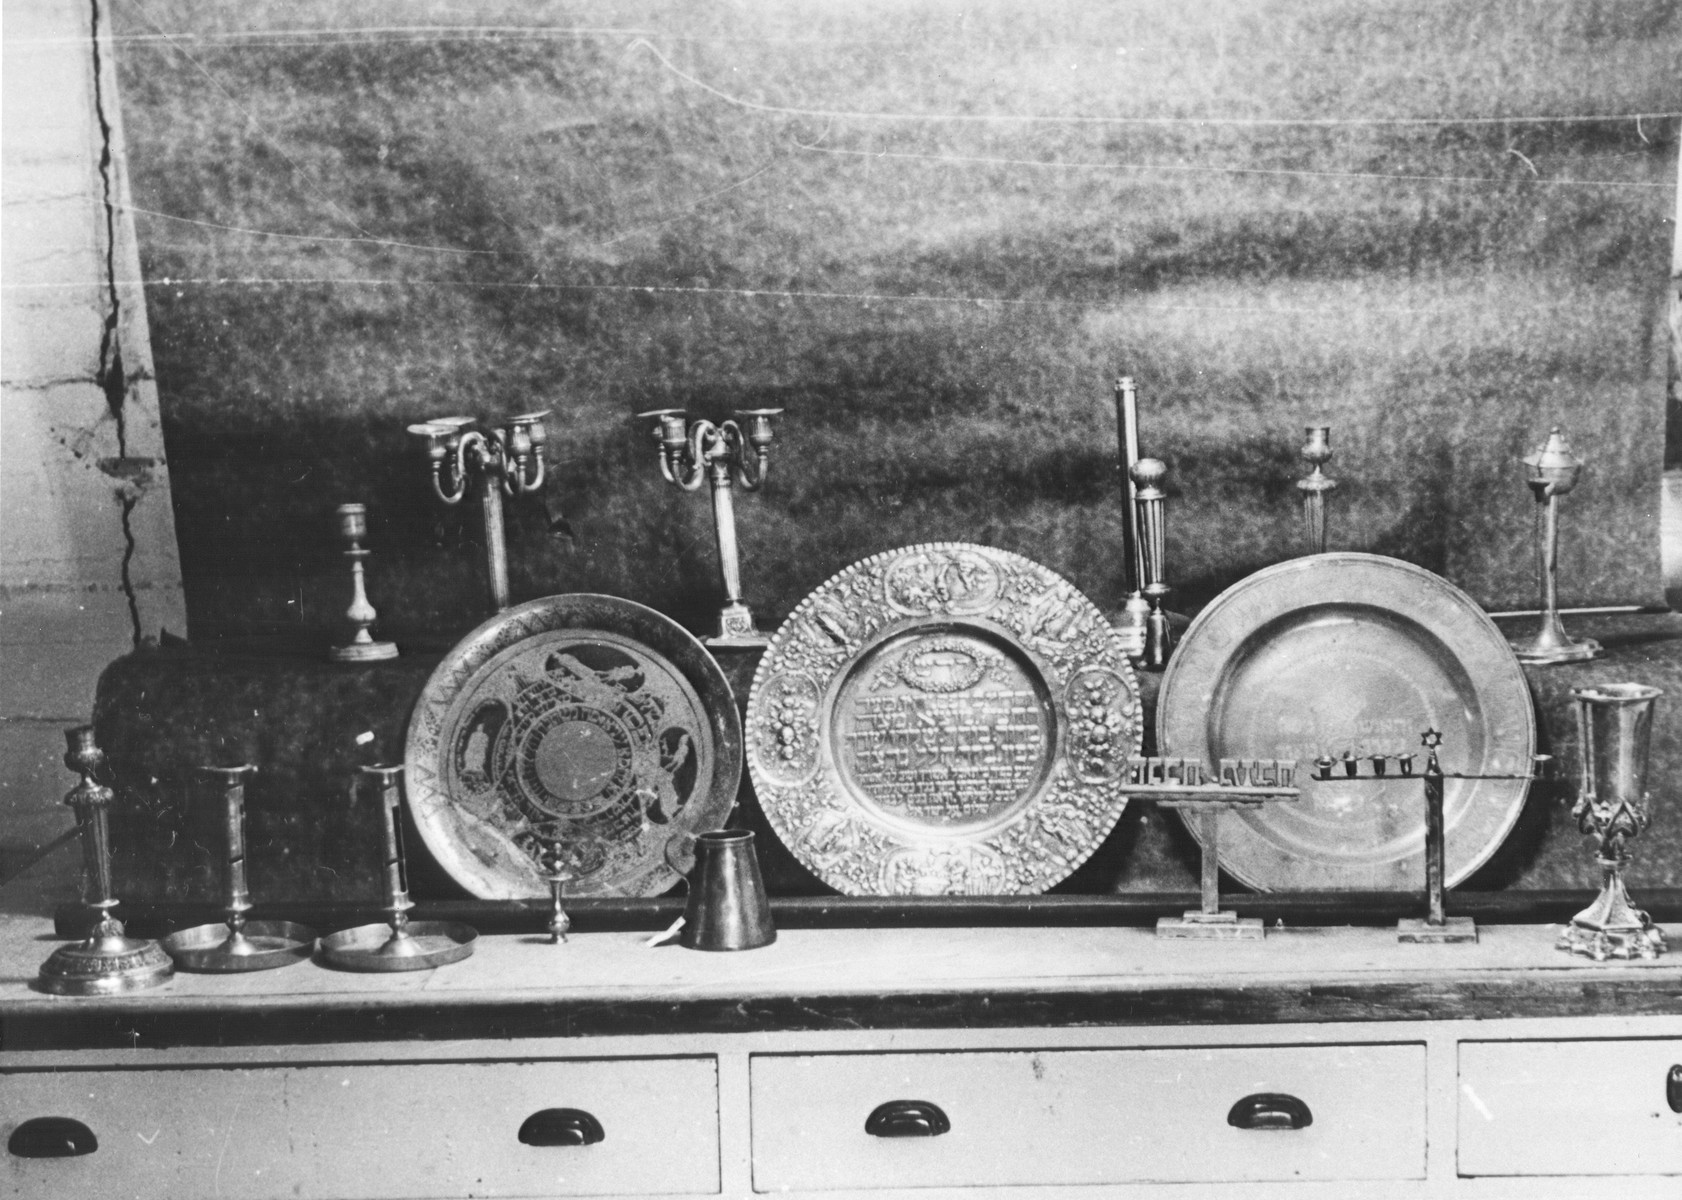 Display of silver Hannukah menorahs, Sabbath candlesticks and seder plates confiscated by the Nazis.